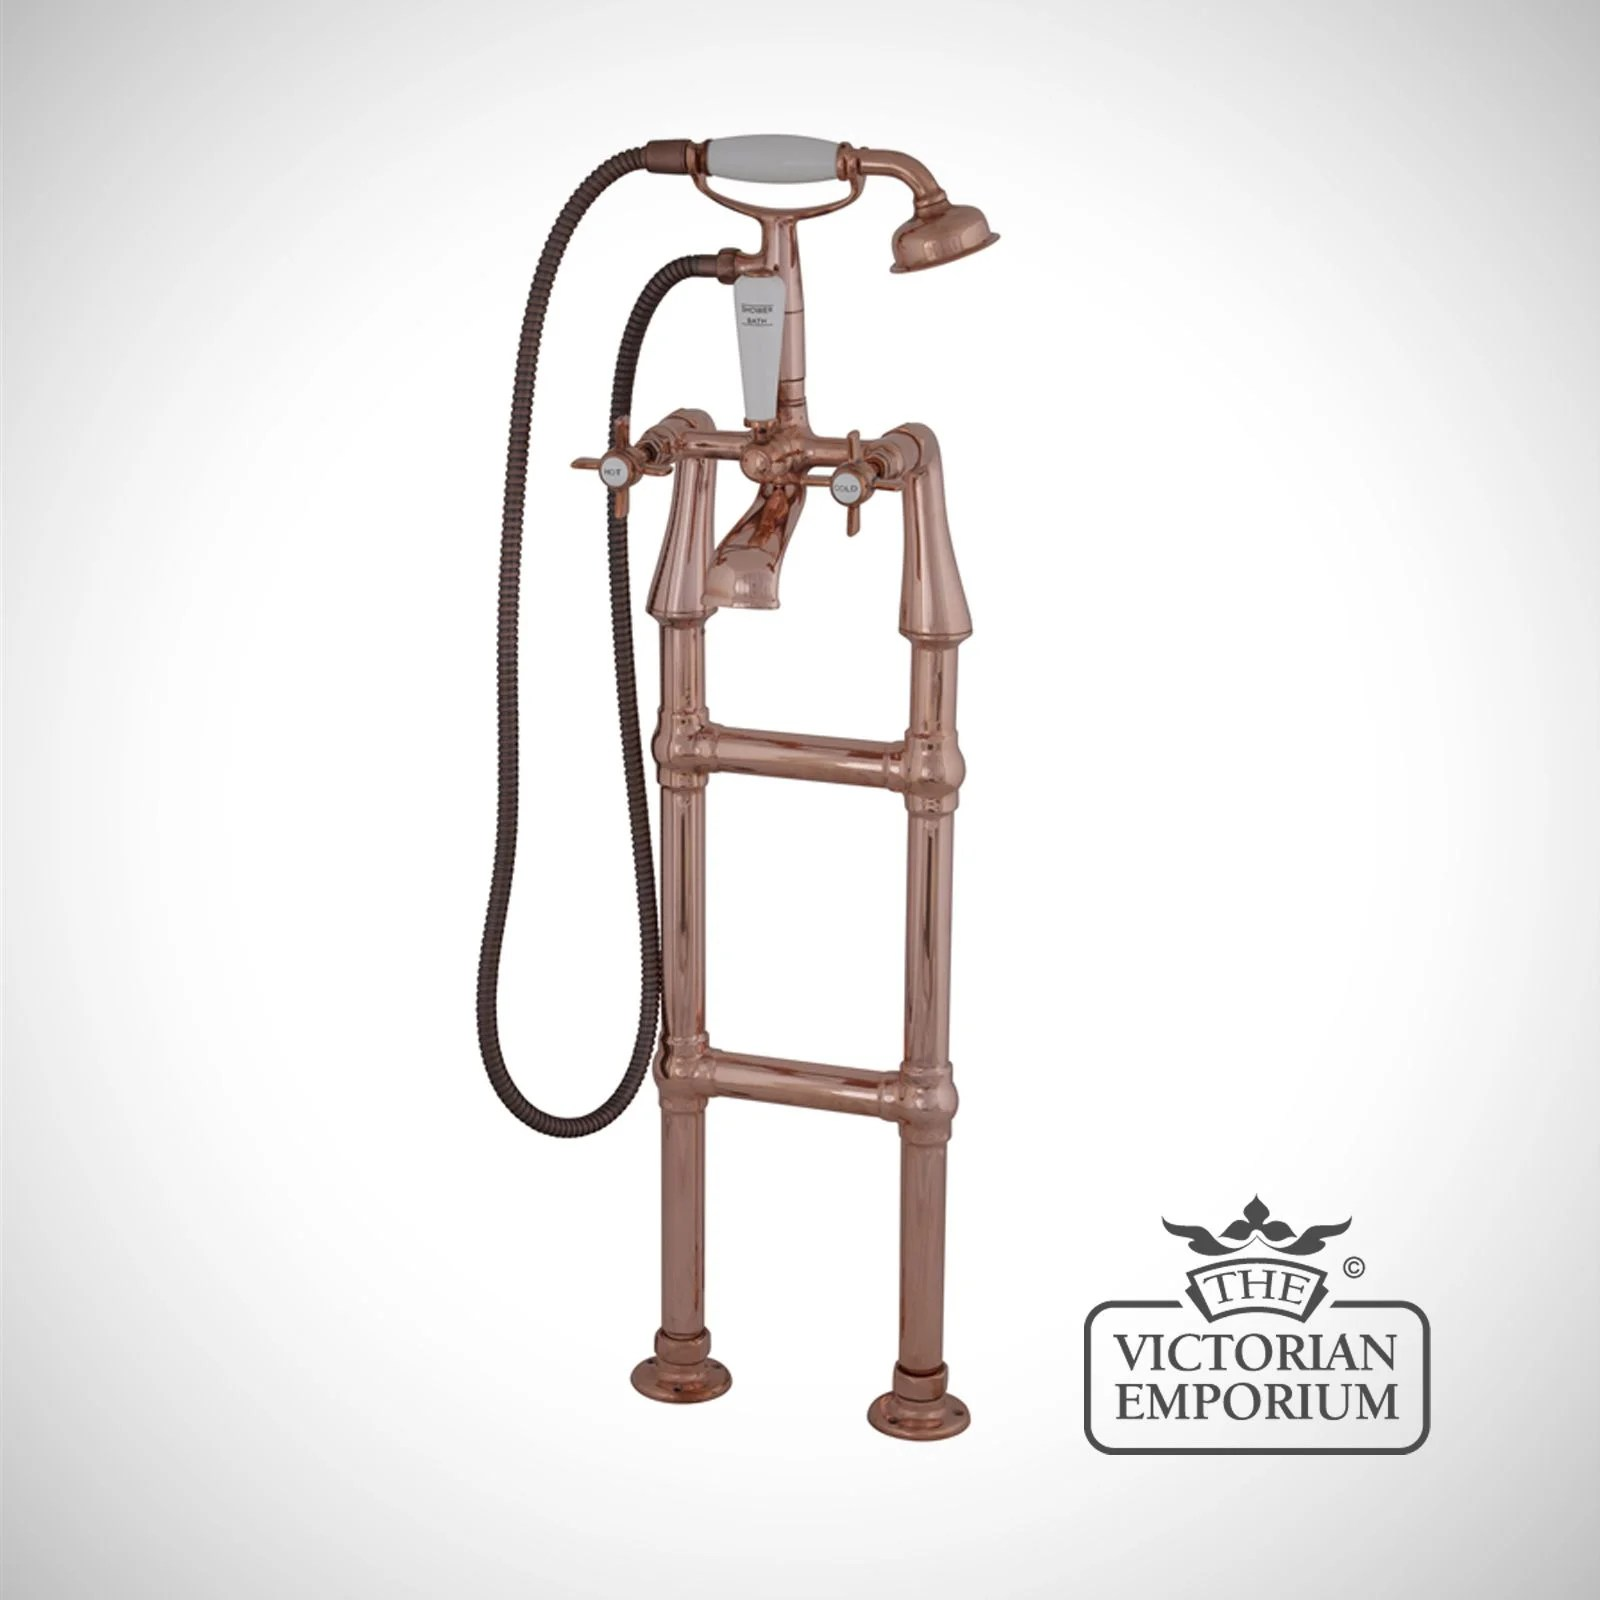 Copper Taps Medium Standing Taps In Chrome Or Copper Bath Taps And